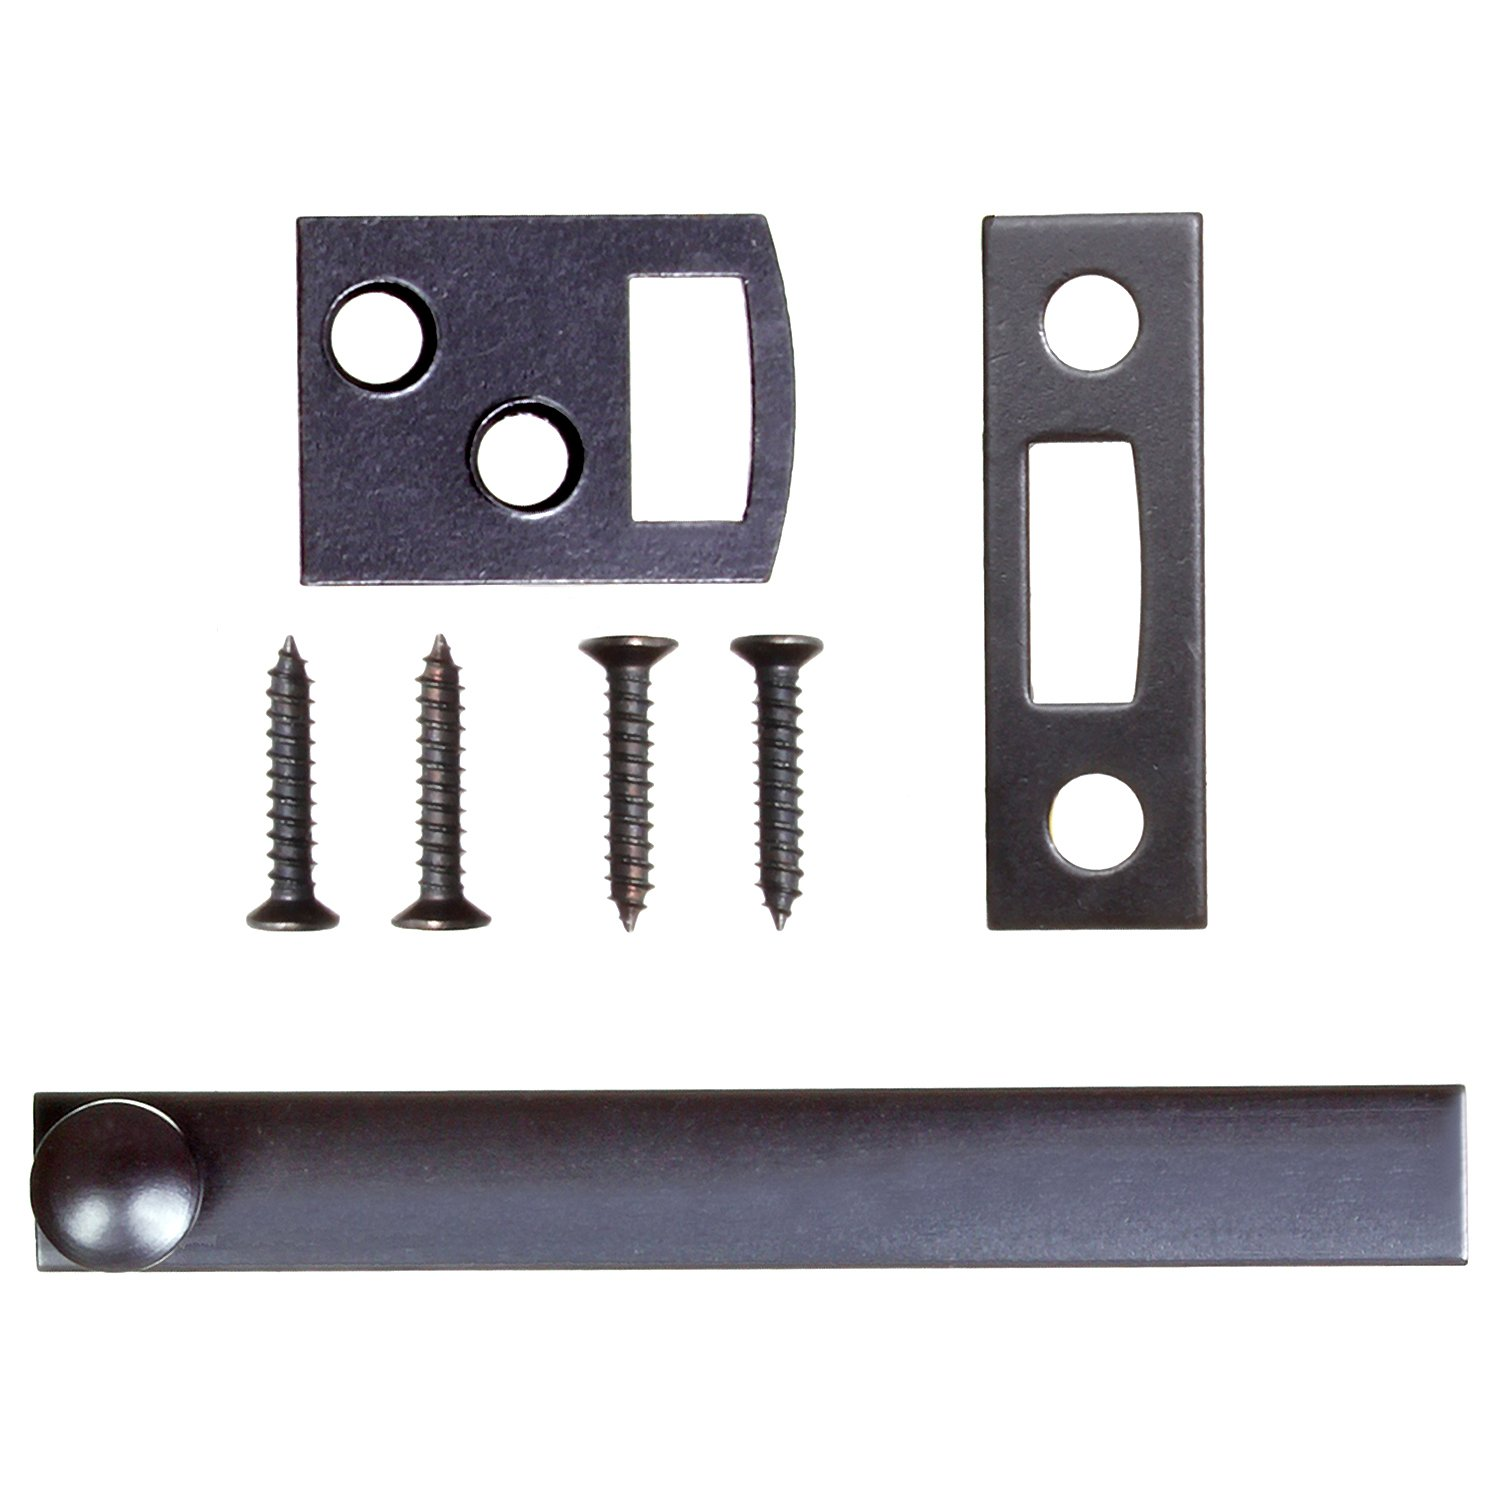 Ram-Pro 3 inch Surface Bolt - window bolt for household surface door bolt Durable flush mounted door bolt in oil-rubbed bronze brass surface latch surface bolts for doors door window bolt